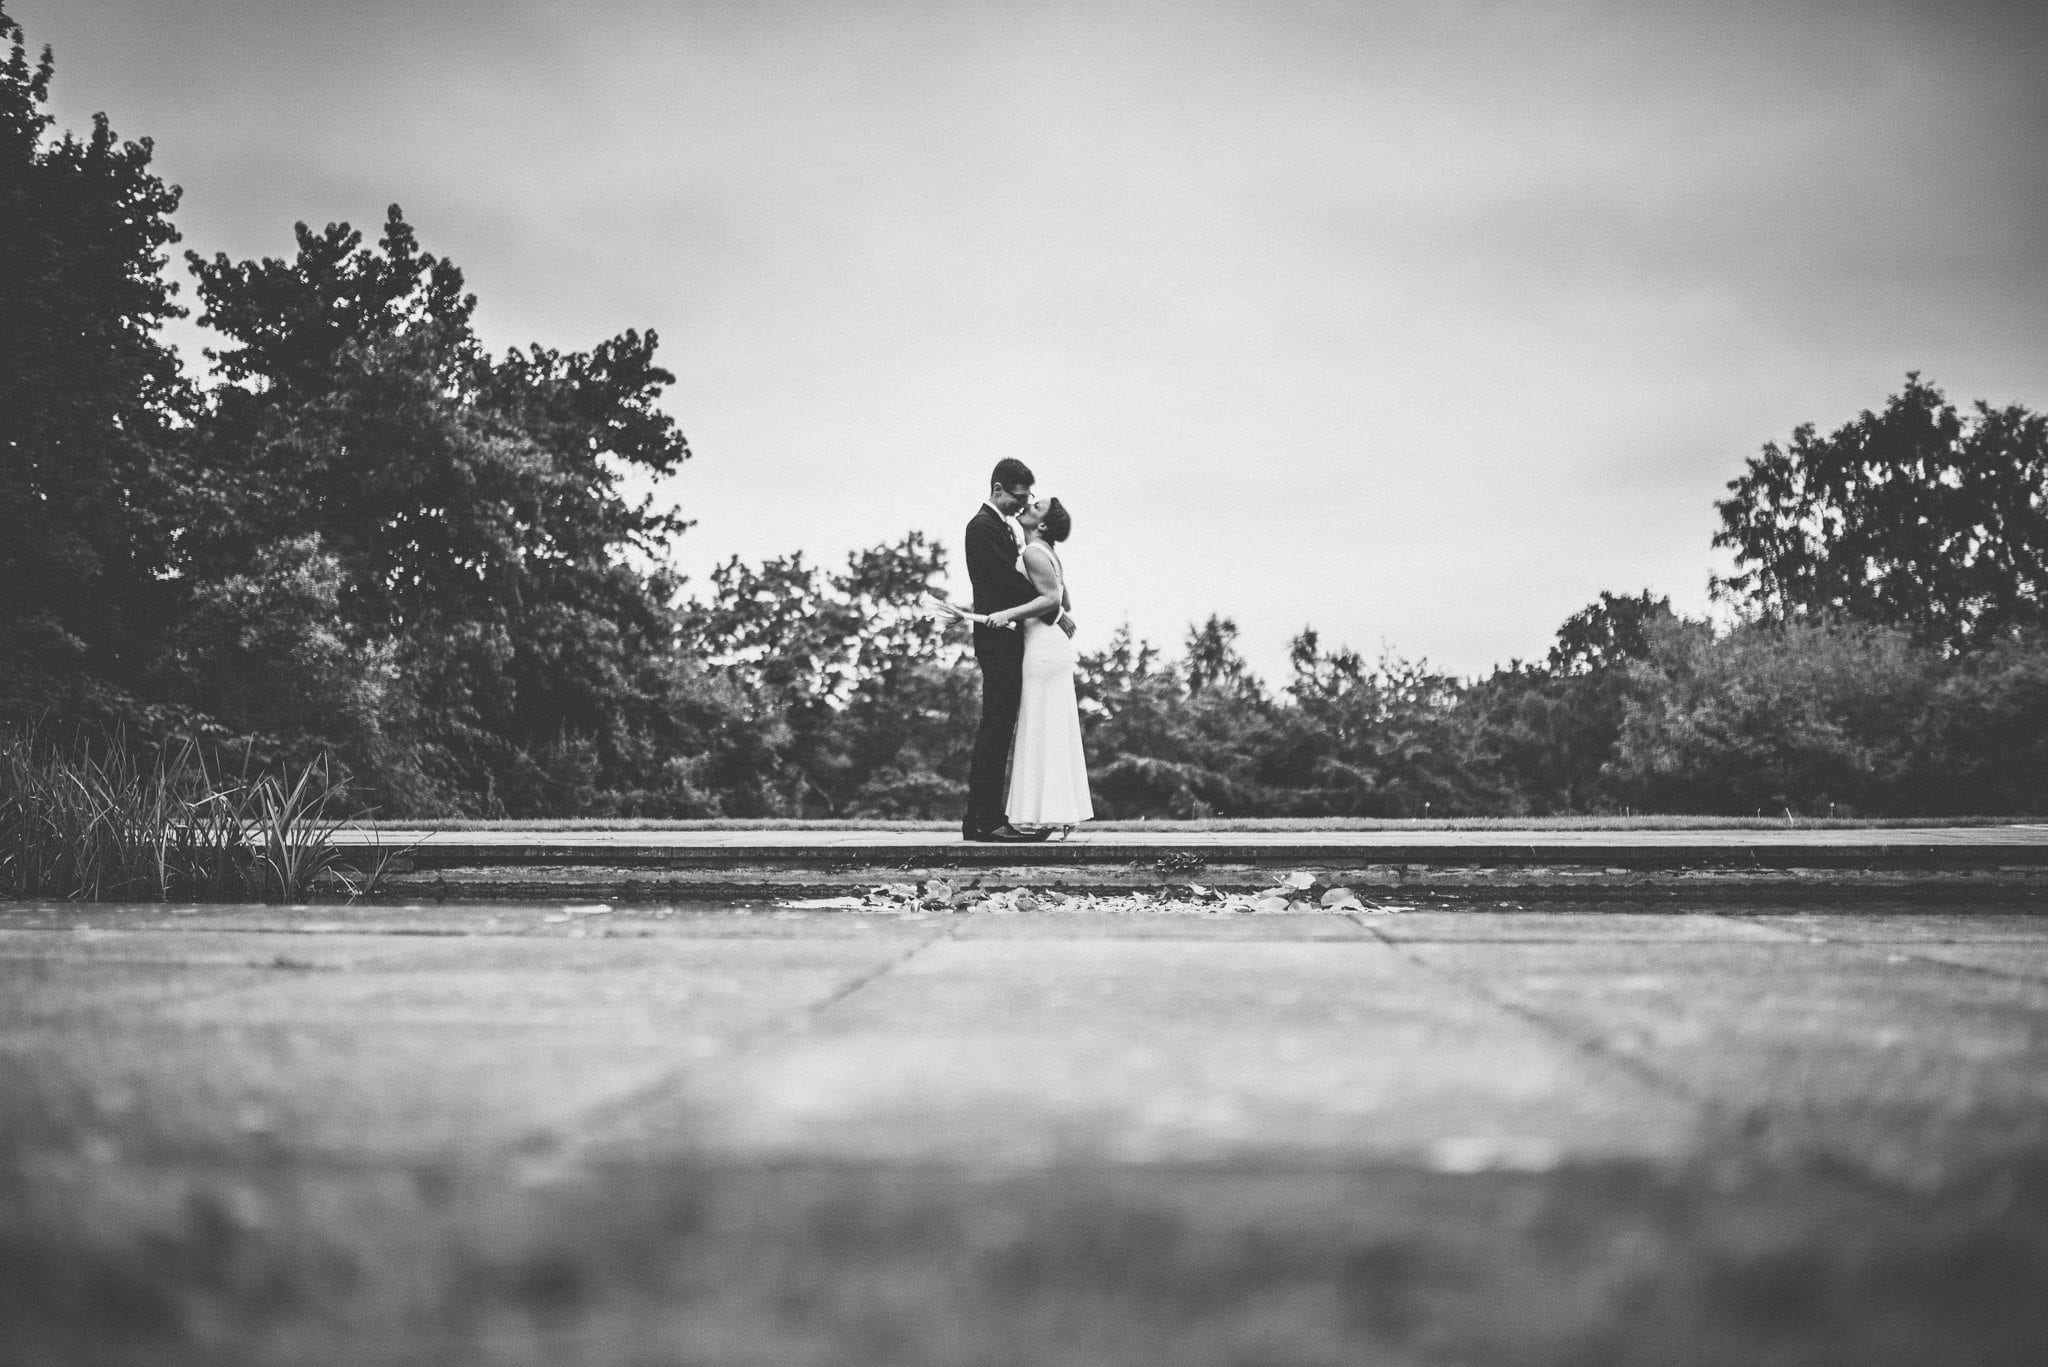 A black and white shot of the newlyweds kissing by the pond